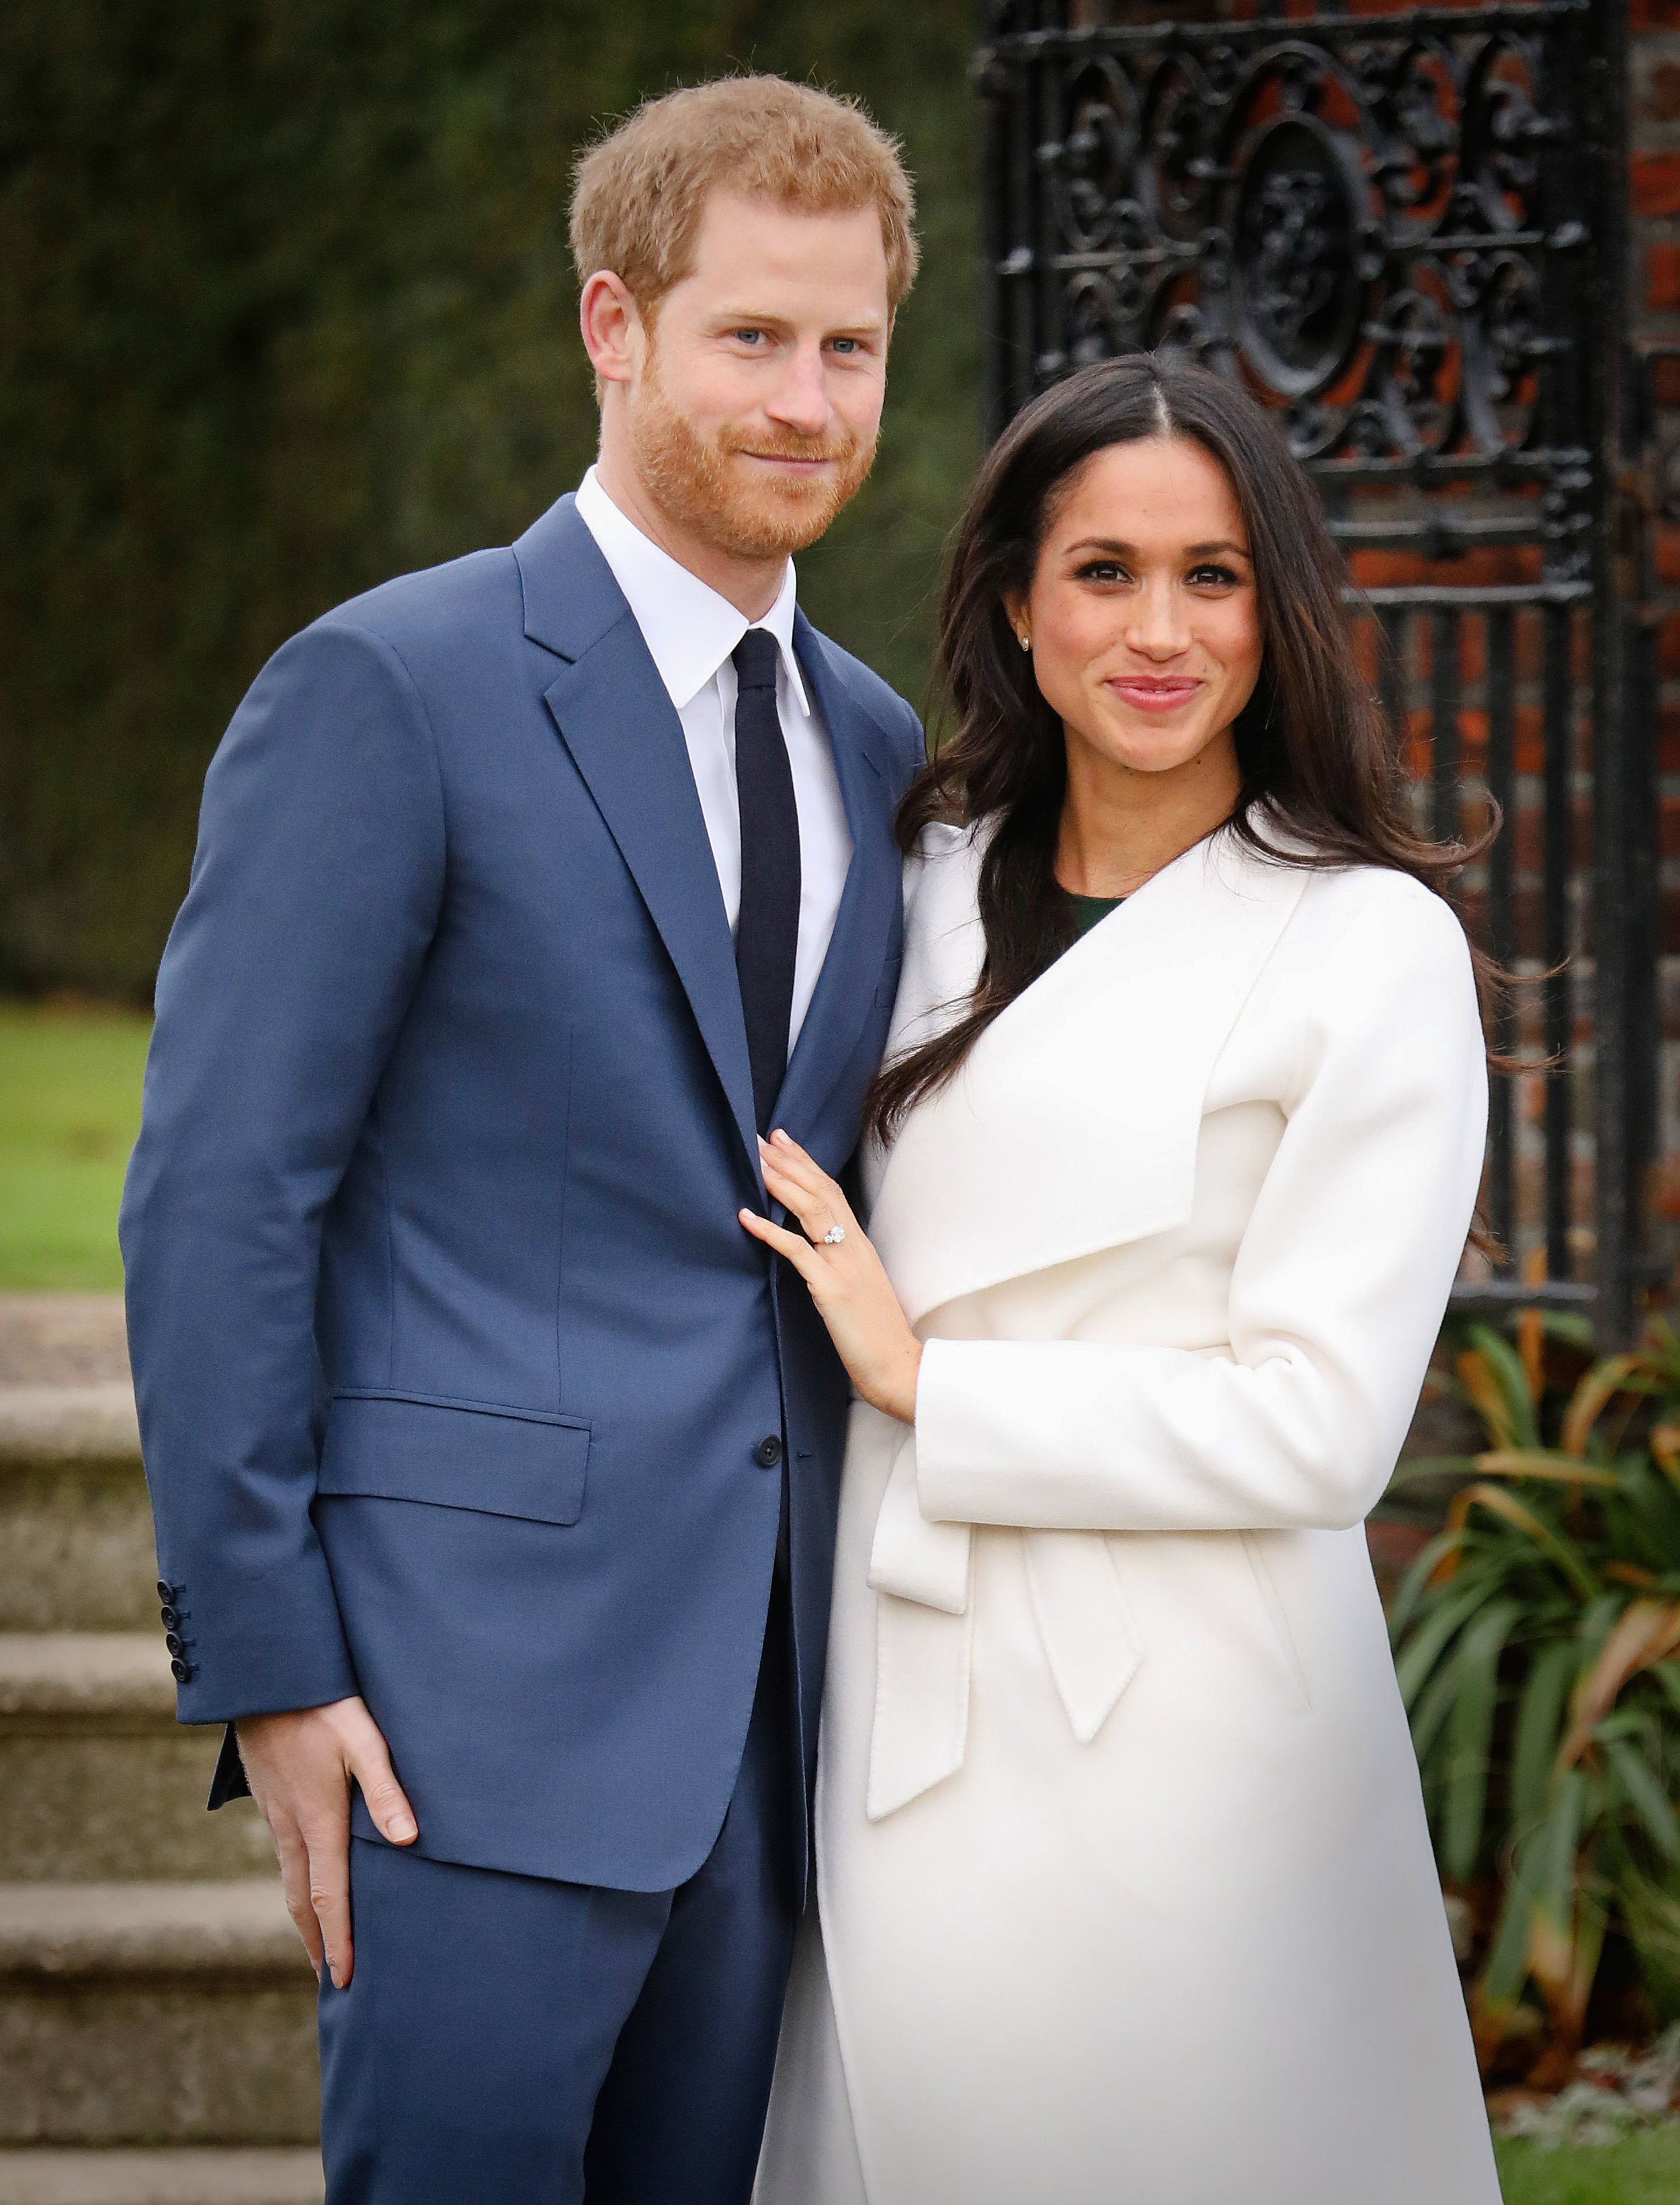 PHT_B5327_prince_harry_engagement_14411.JPG